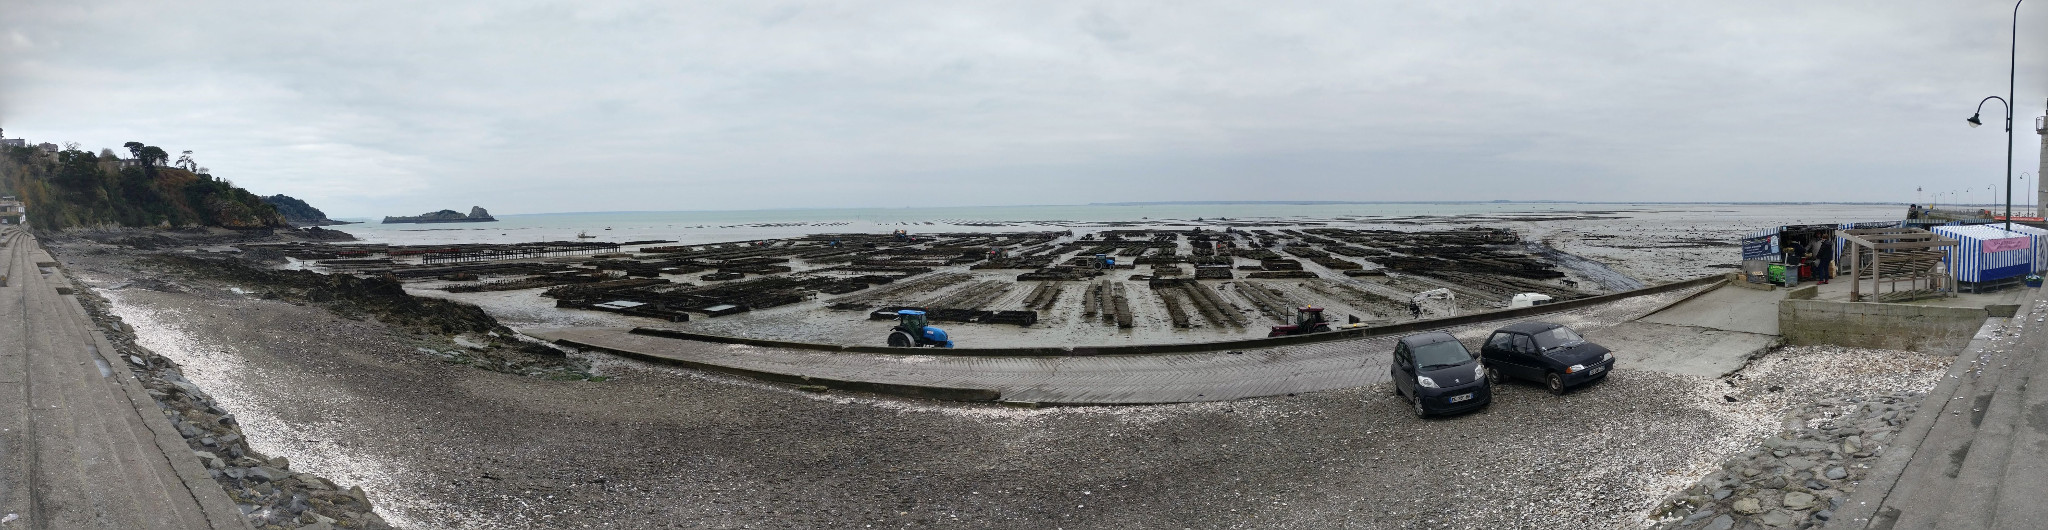 Panoramic with lots of oysters beds and the popular Oyster Market